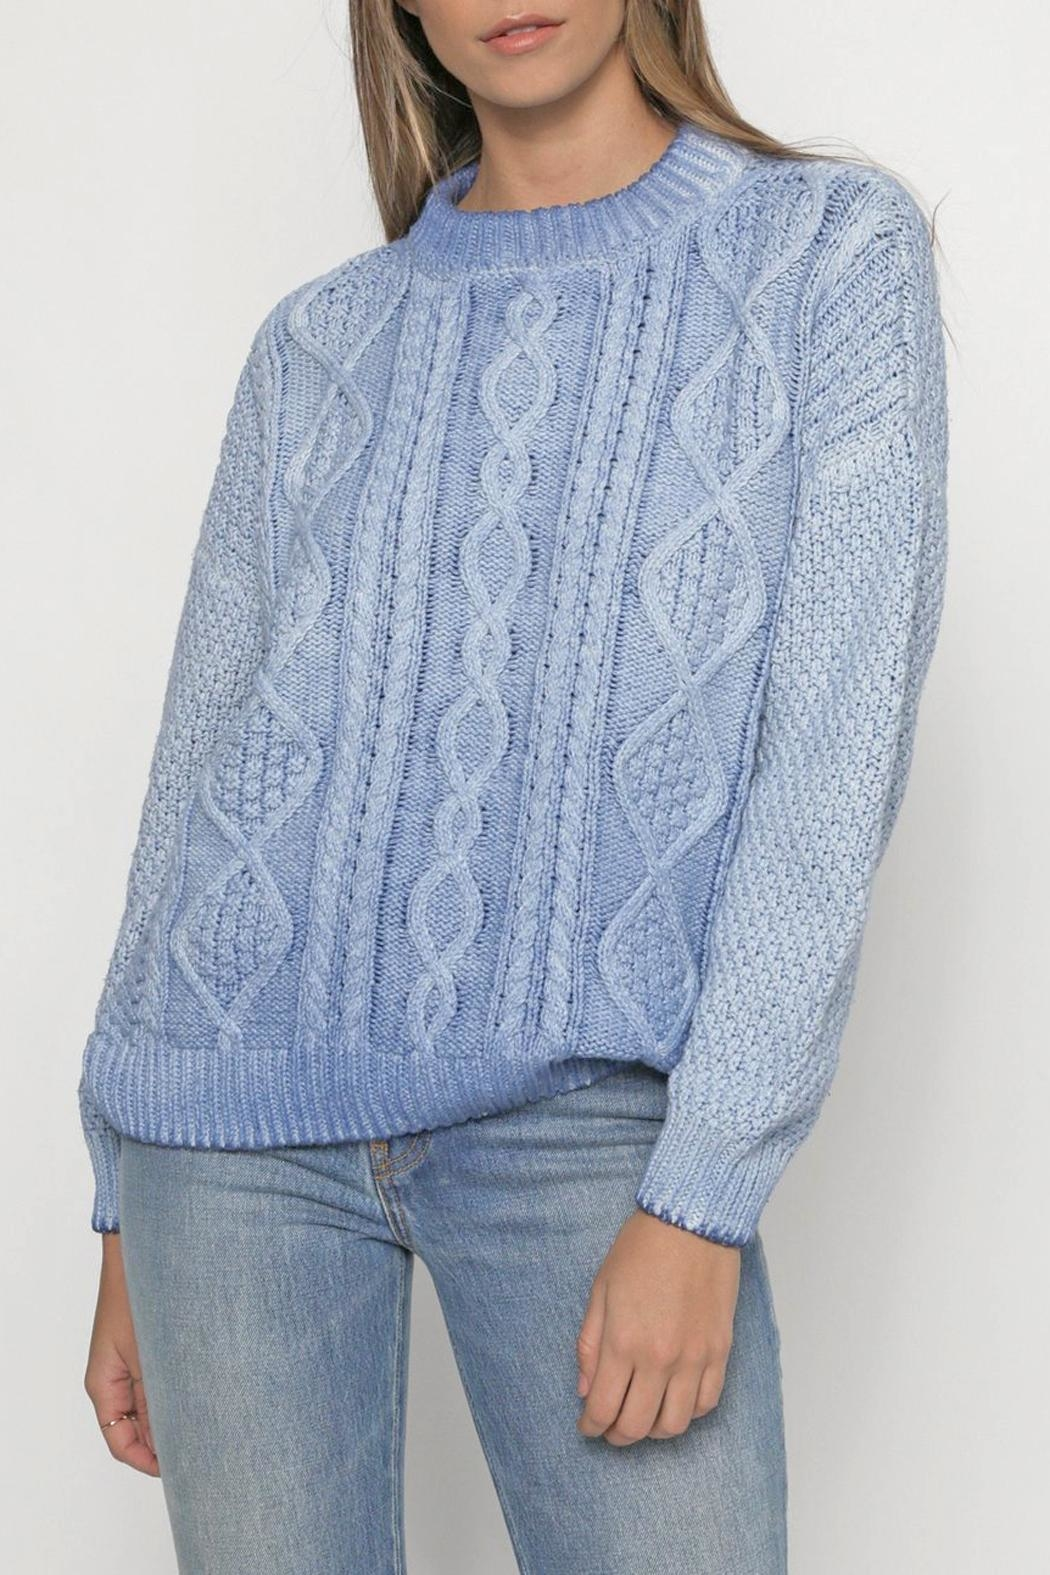 Christina Lehr Birch Marine Sweater - Front Cropped Image